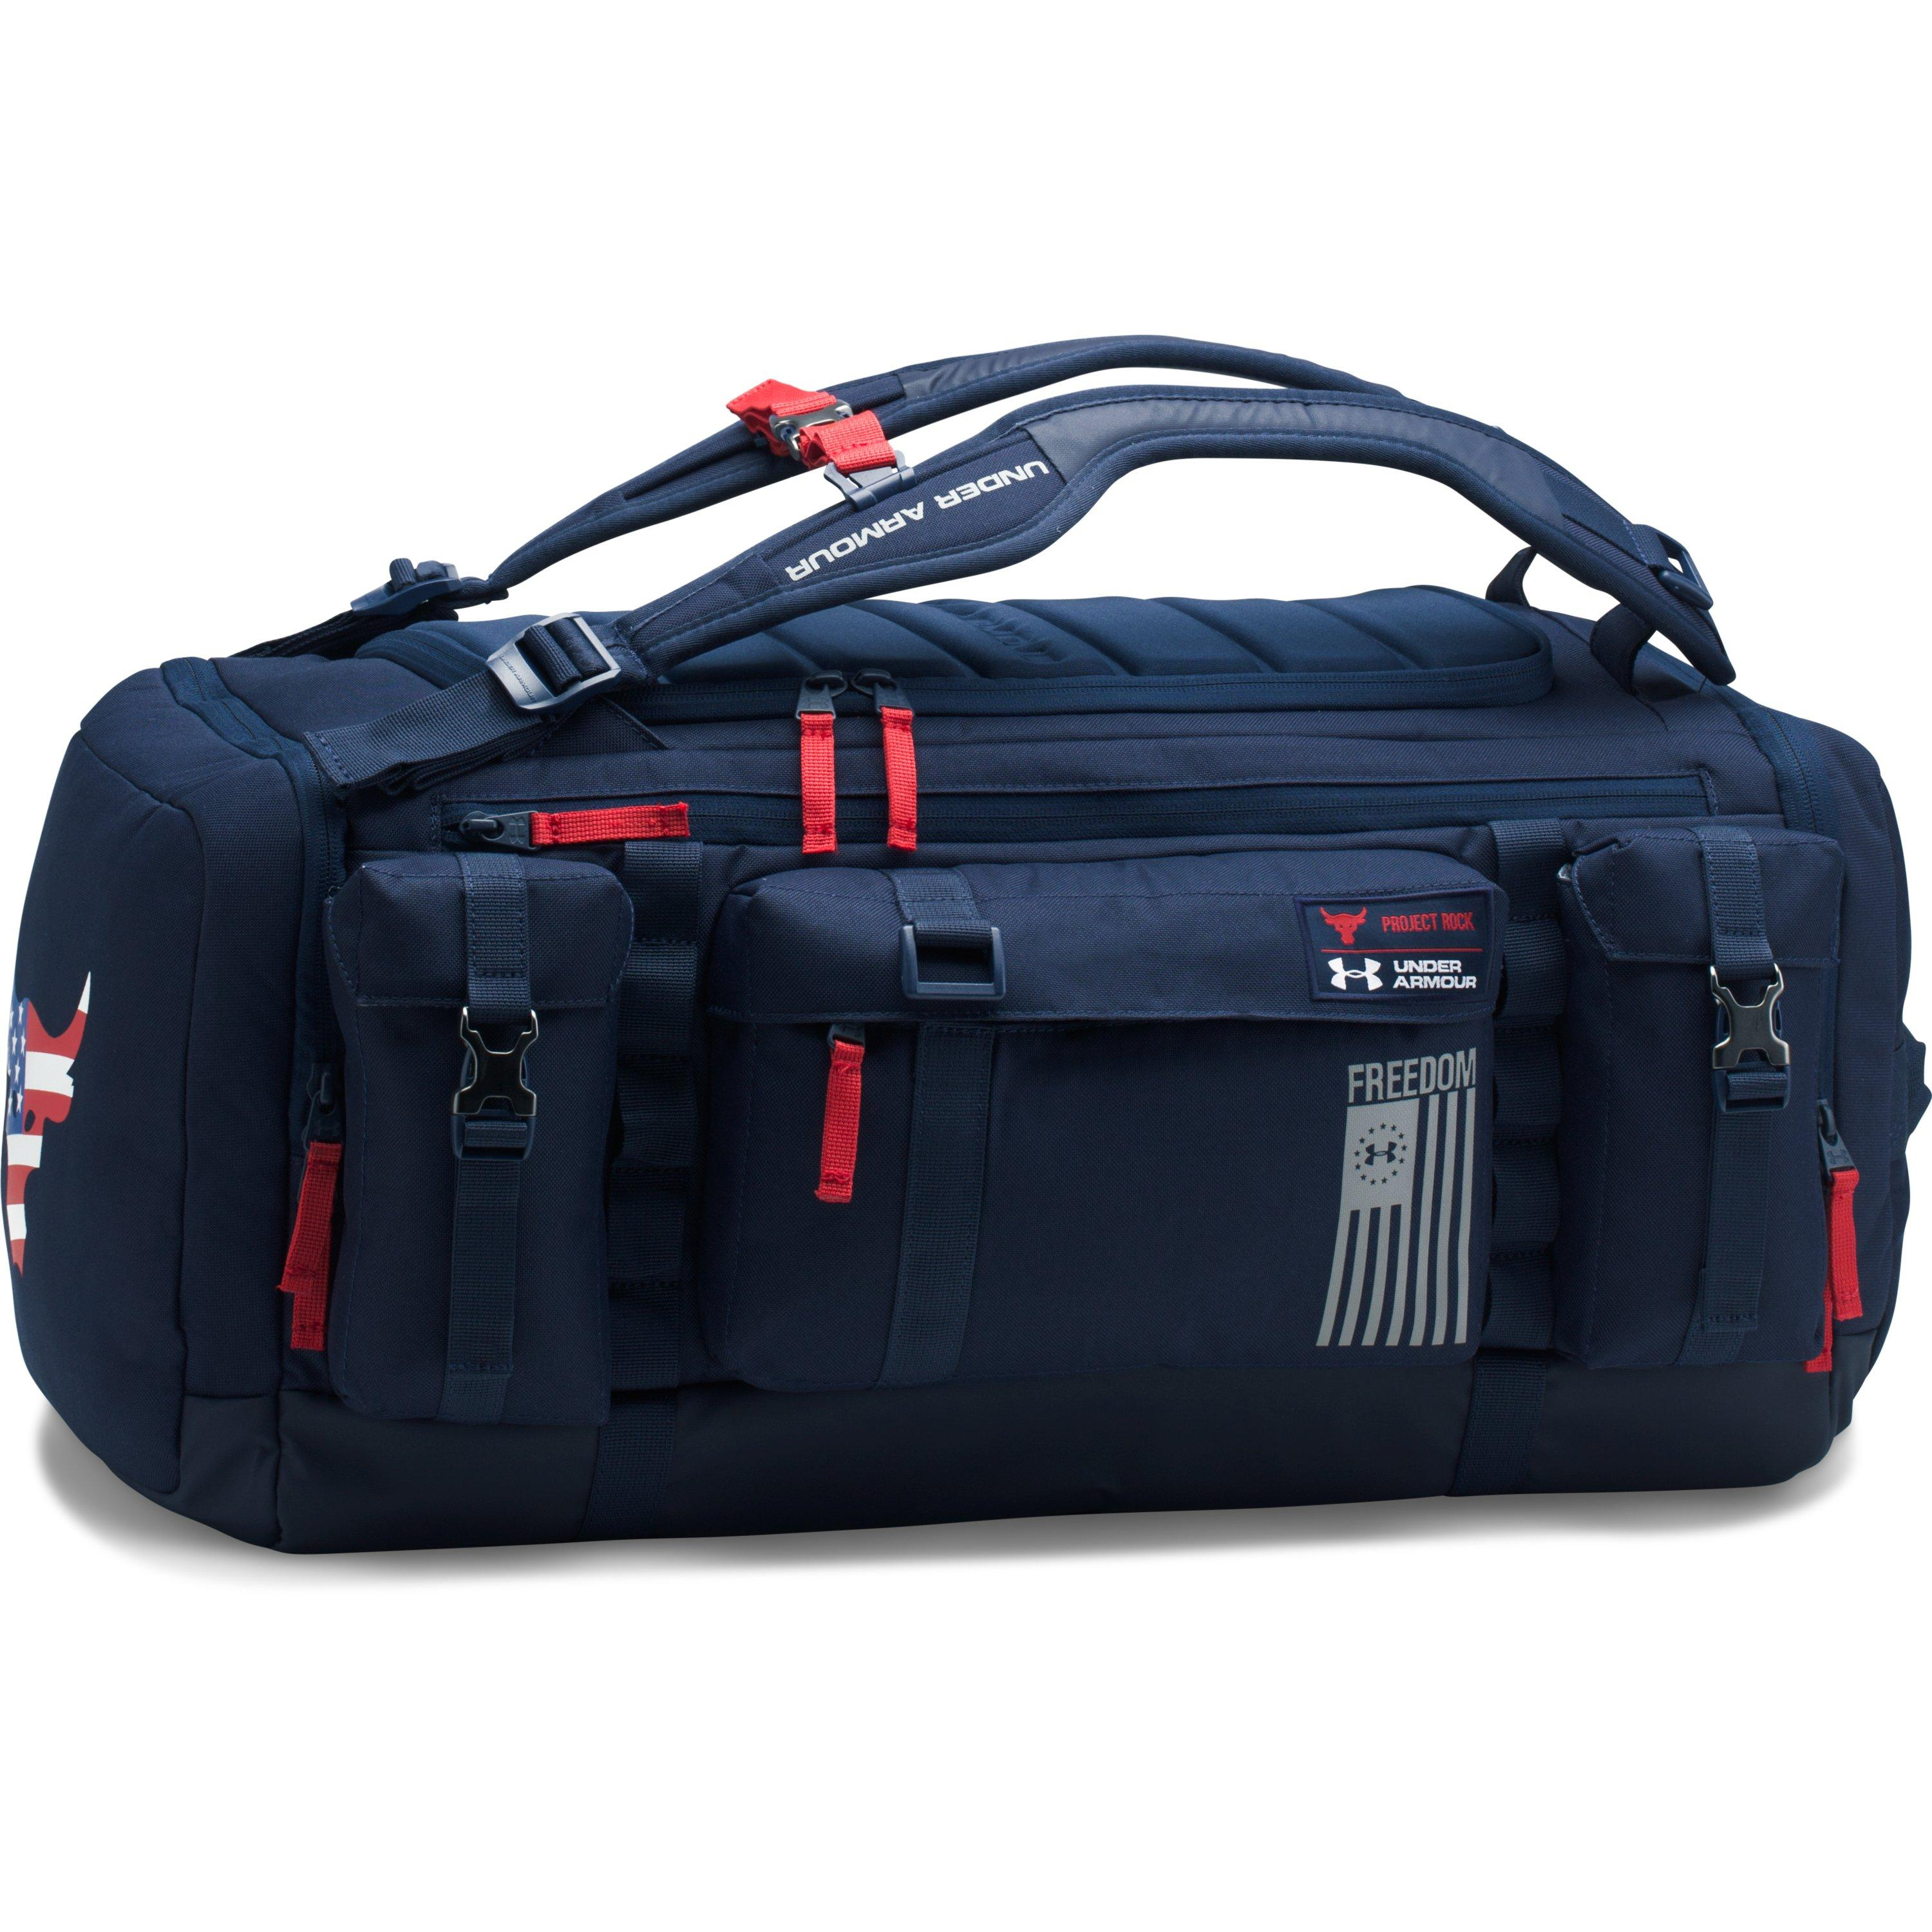 Lyst - Under Armour Ua X Project Rock Freedom Range Duffle in Blue ... cc973aa6357e6